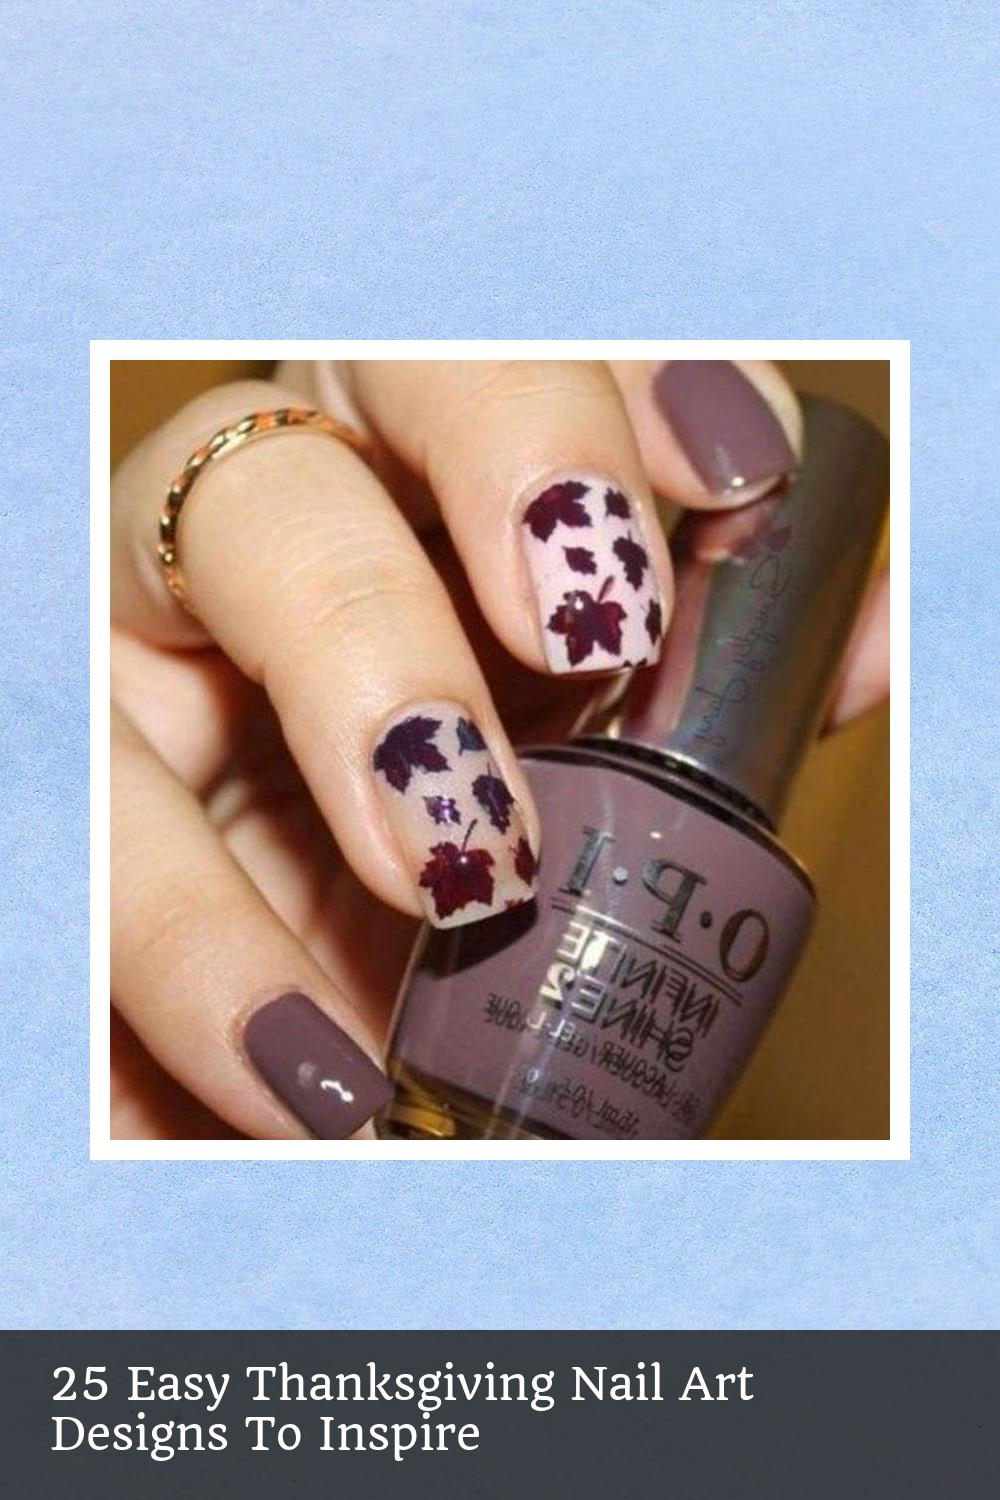 25 Easy Thanksgiving Nail Art Designs To Inspire 15